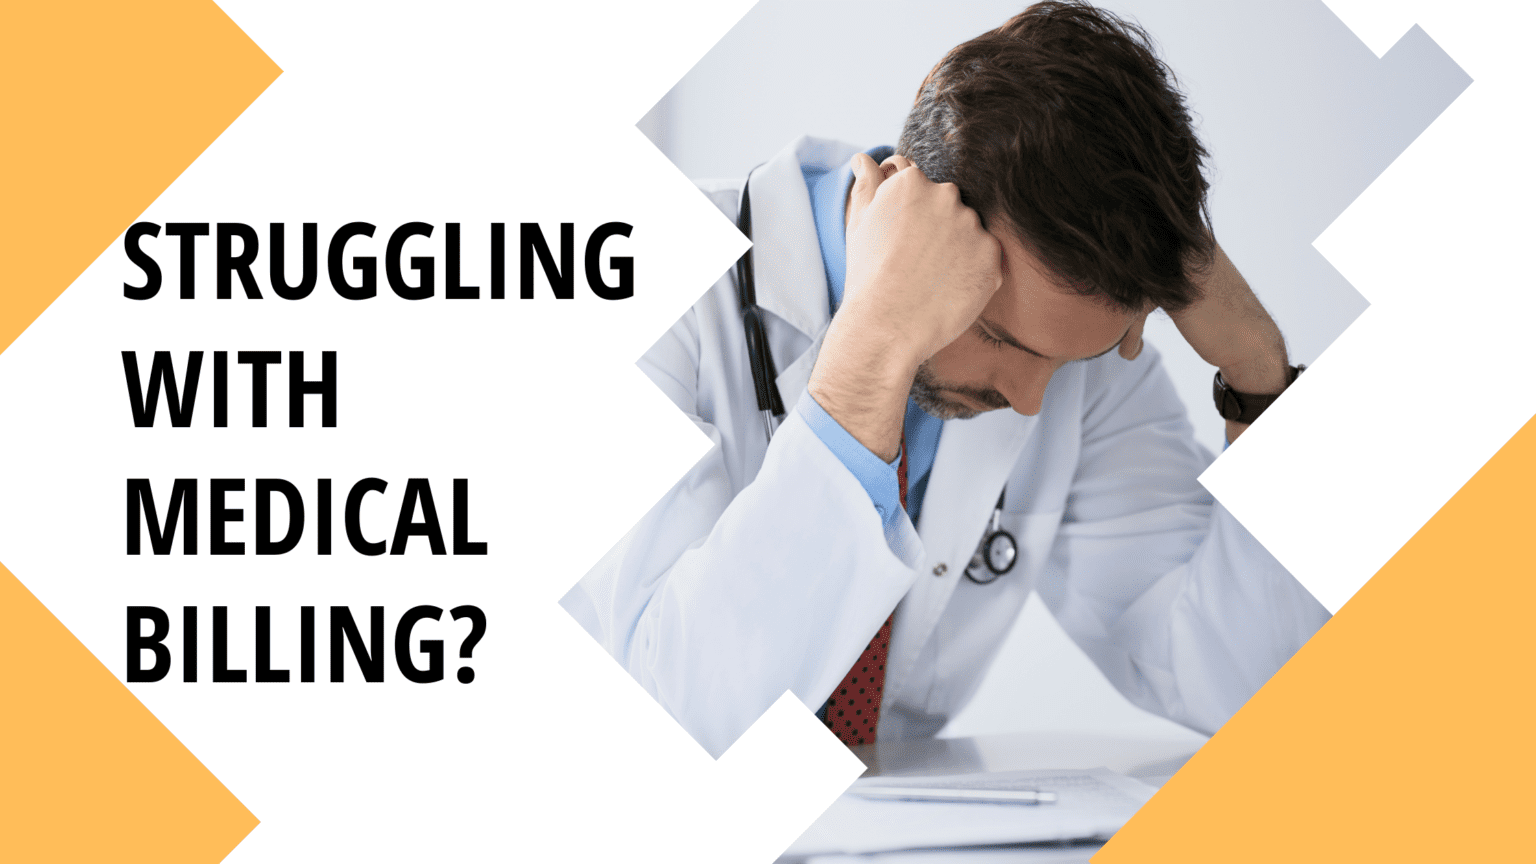 doctor struggling over medical billing paperwork